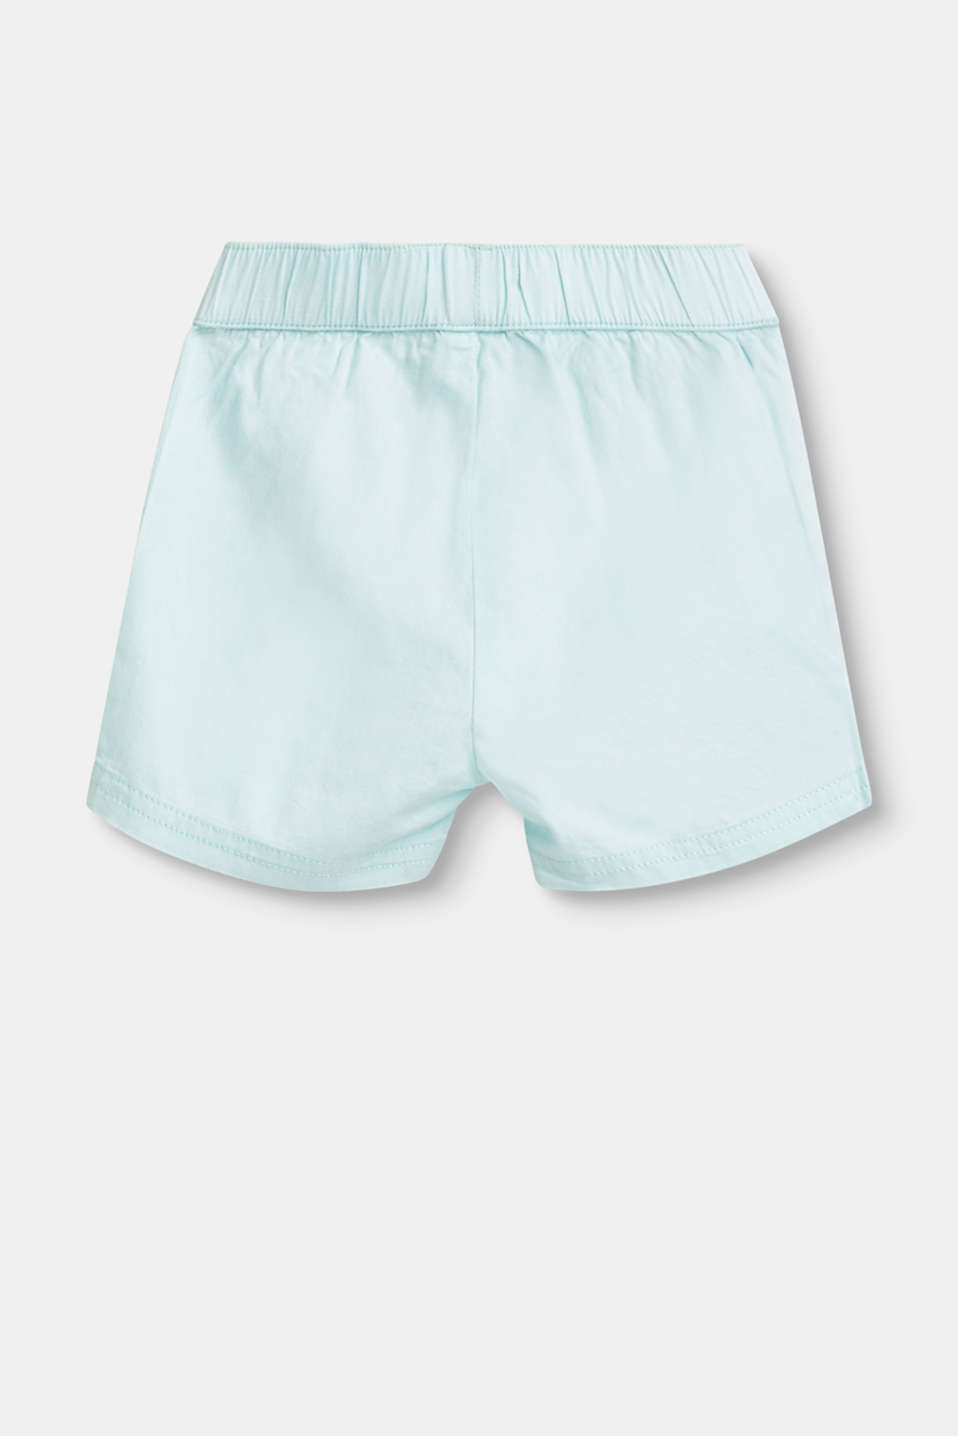 Woven shorts with an elasticated waistband, 100% cotton